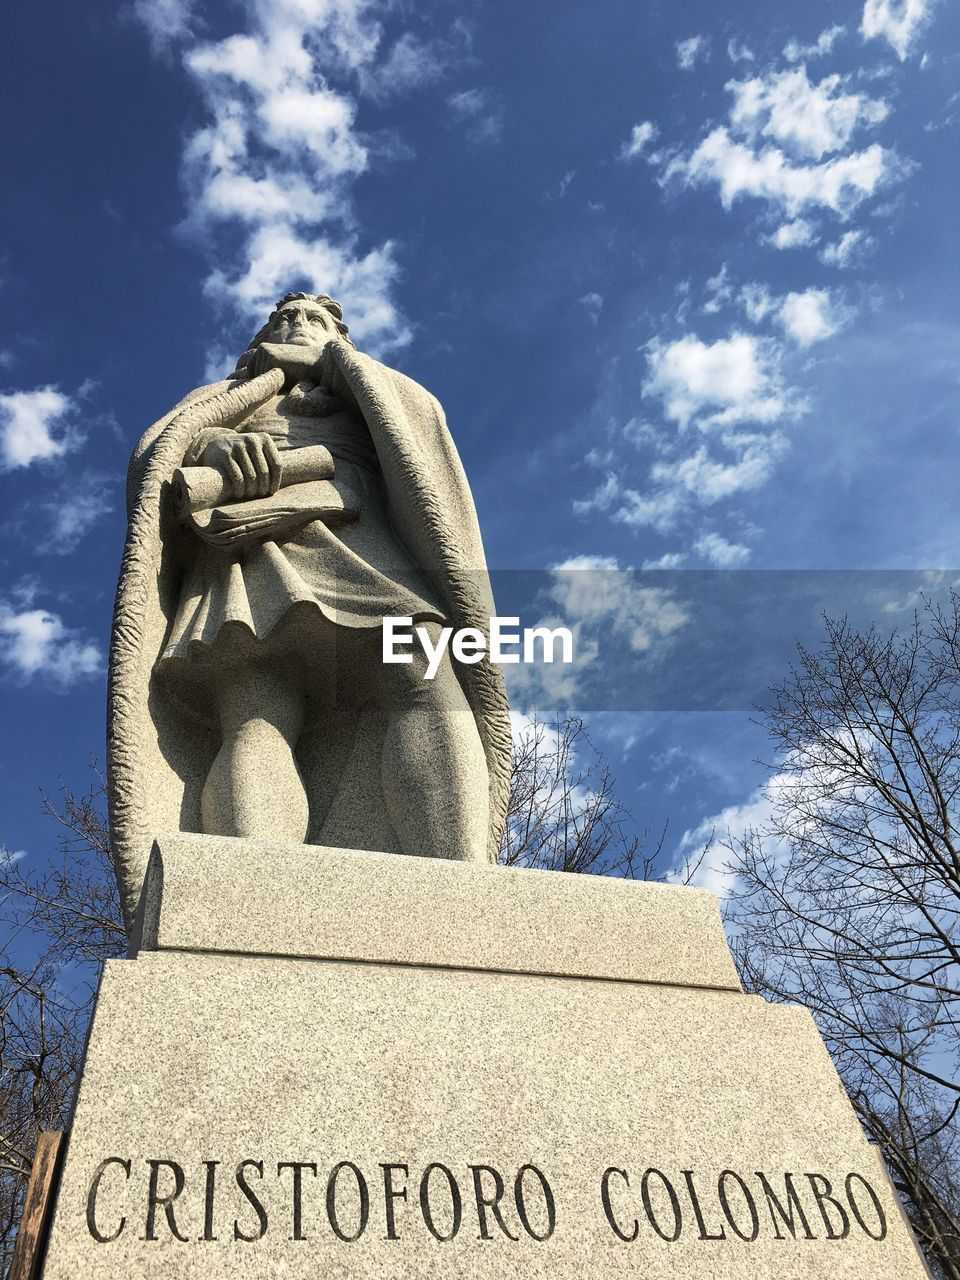 art and craft, statue, sculpture, sky, low angle view, representation, human representation, male likeness, no people, communication, architecture, cloud - sky, text, day, western script, nature, creativity, memorial, history